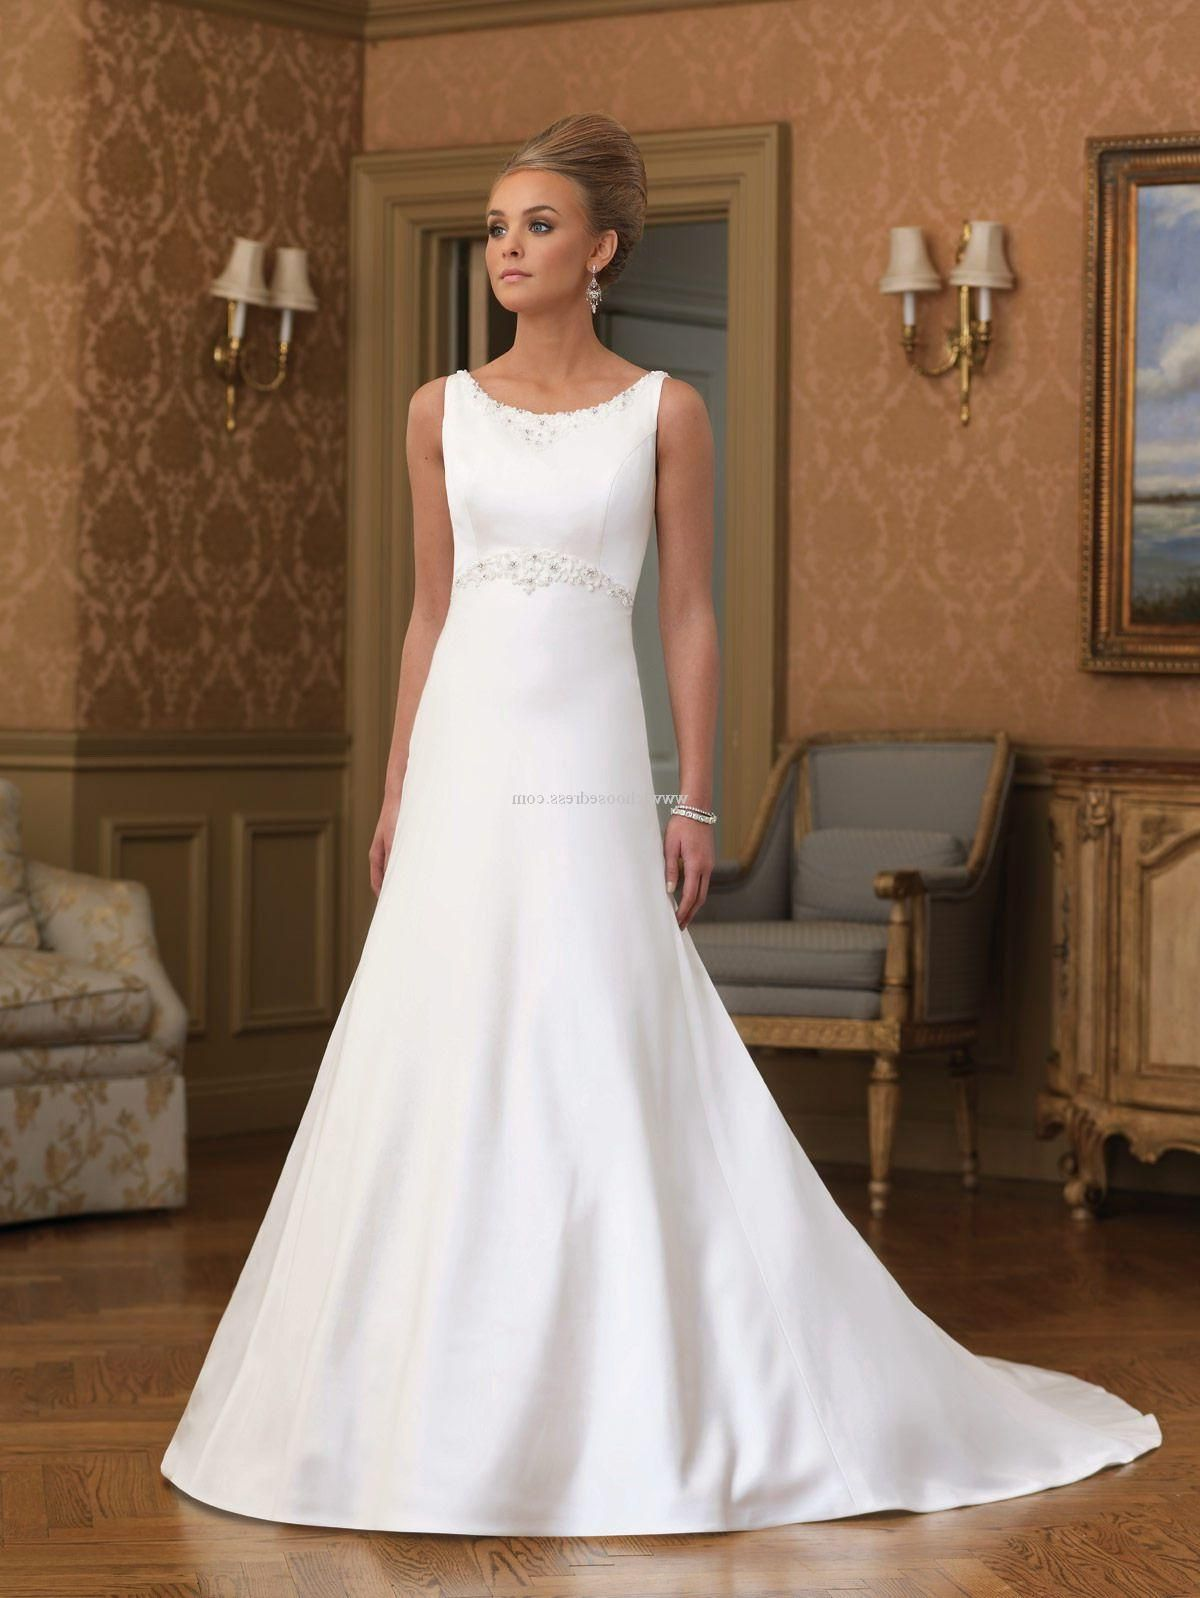 Love This Audrey Hepburn Style Wedding Dress Clic And Elegant